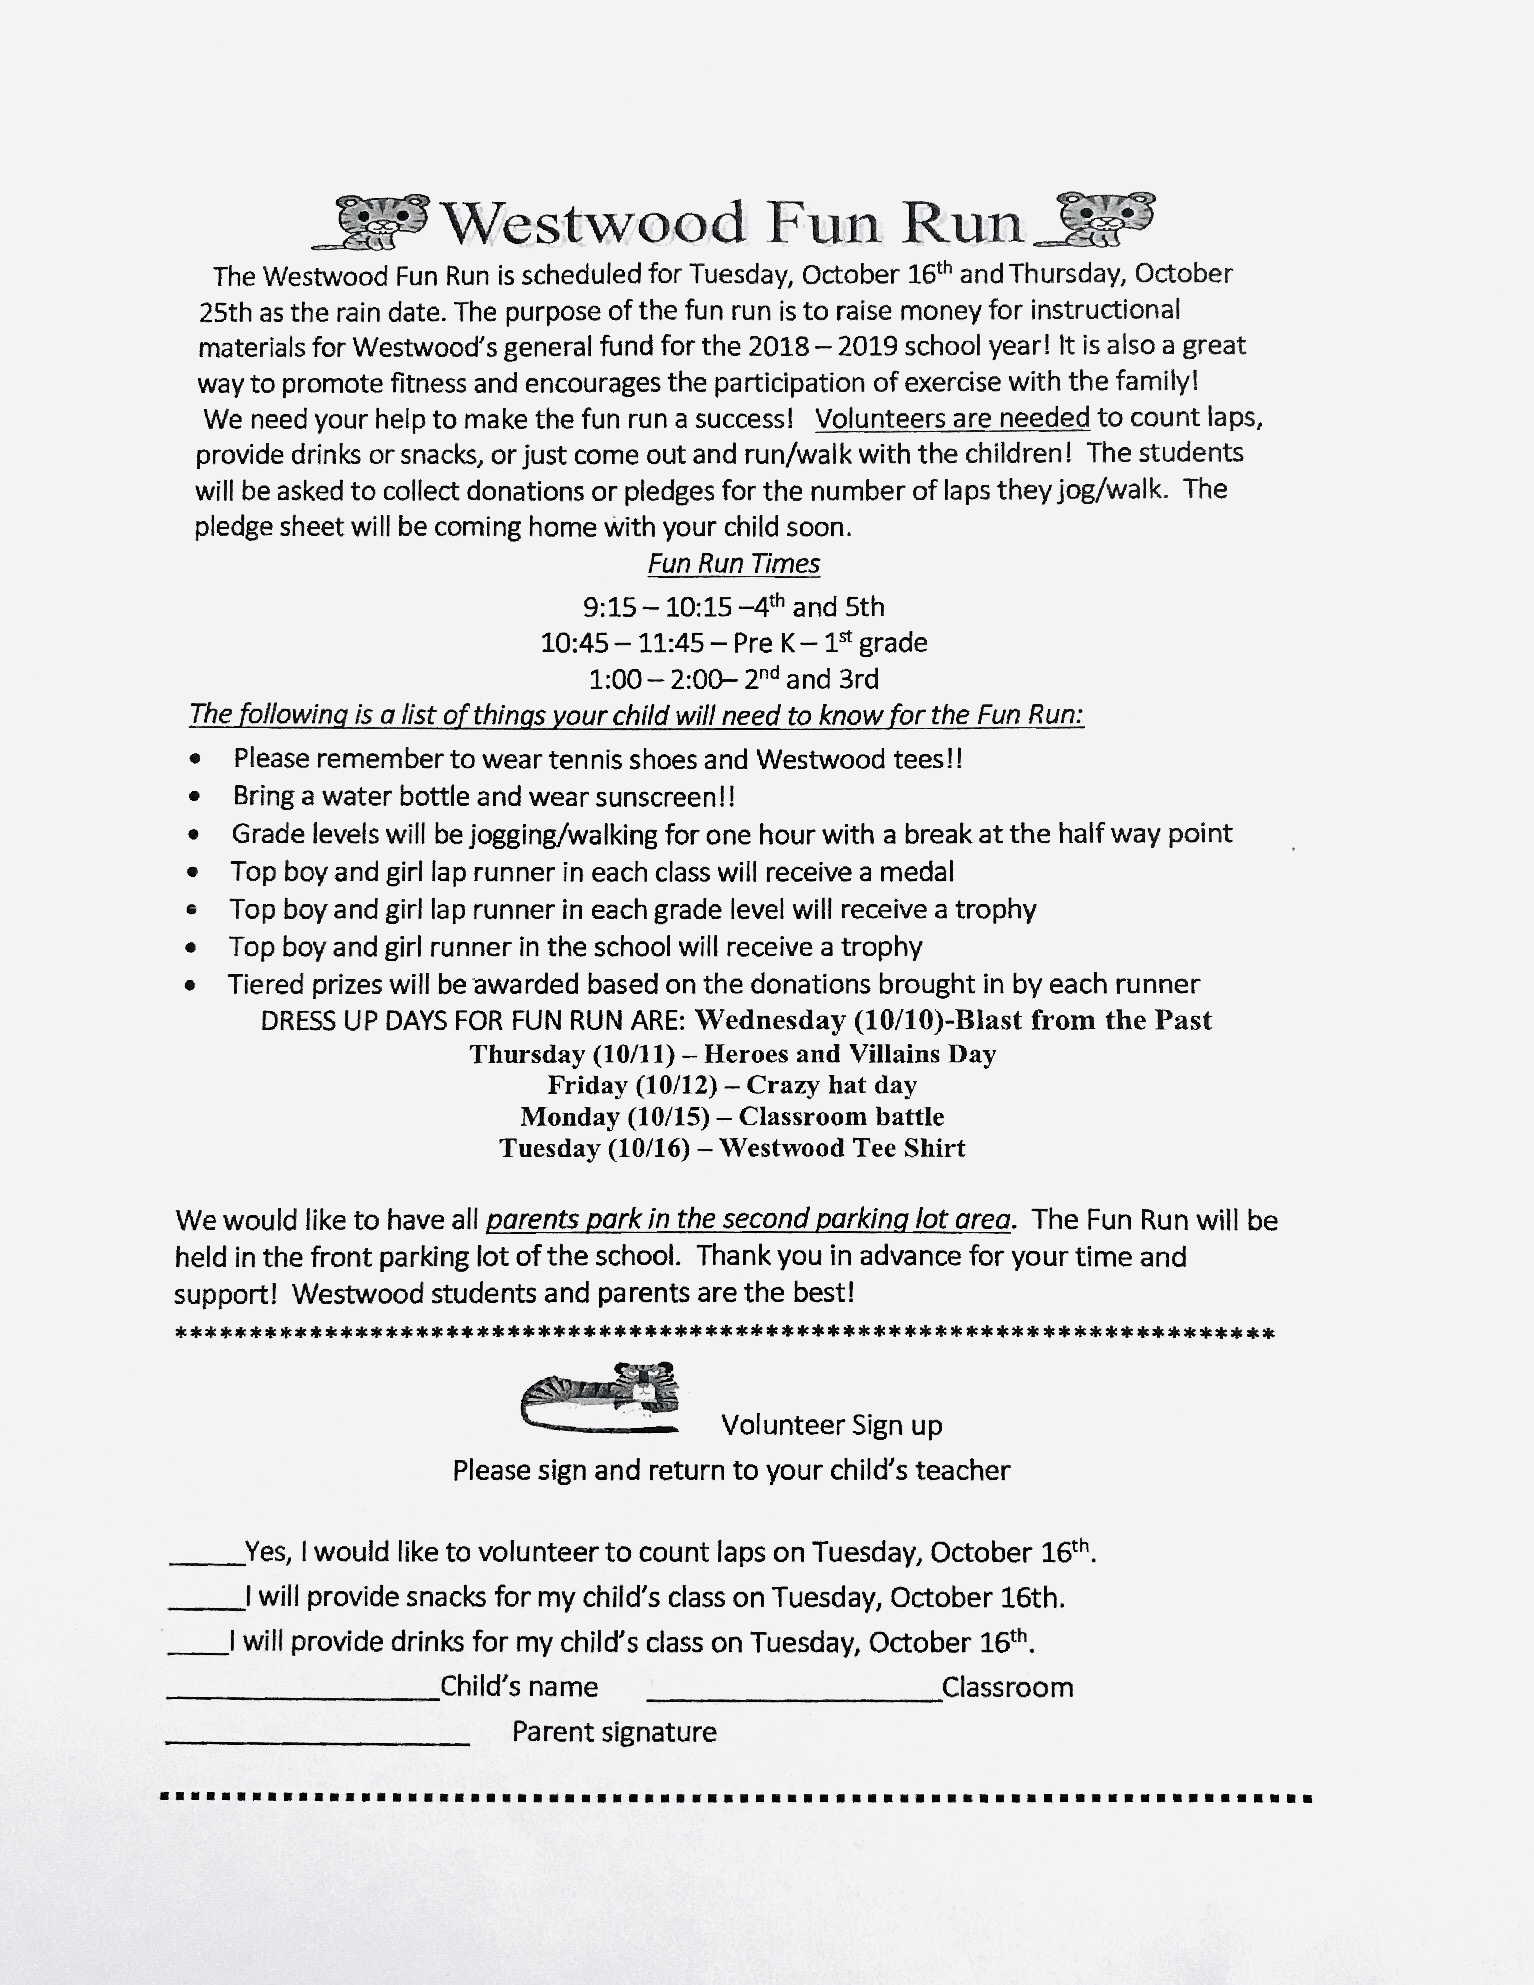 Westwood 2018 Fun Run Flyer paper copy available in office